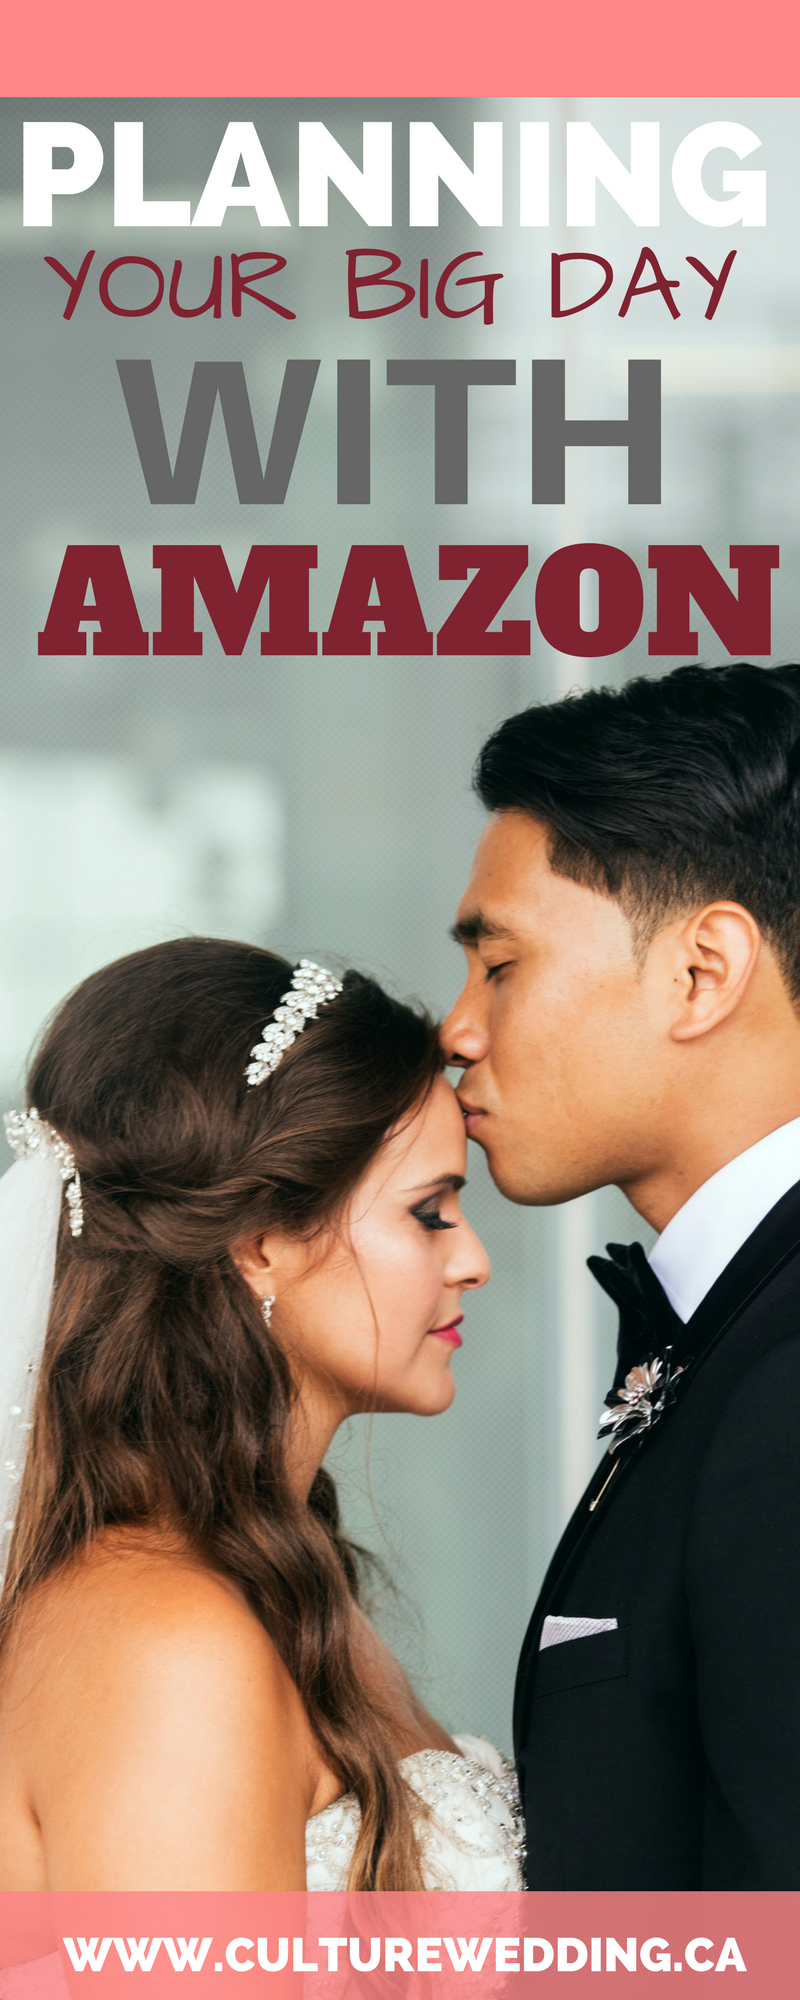 Planning a wedding with Amazon